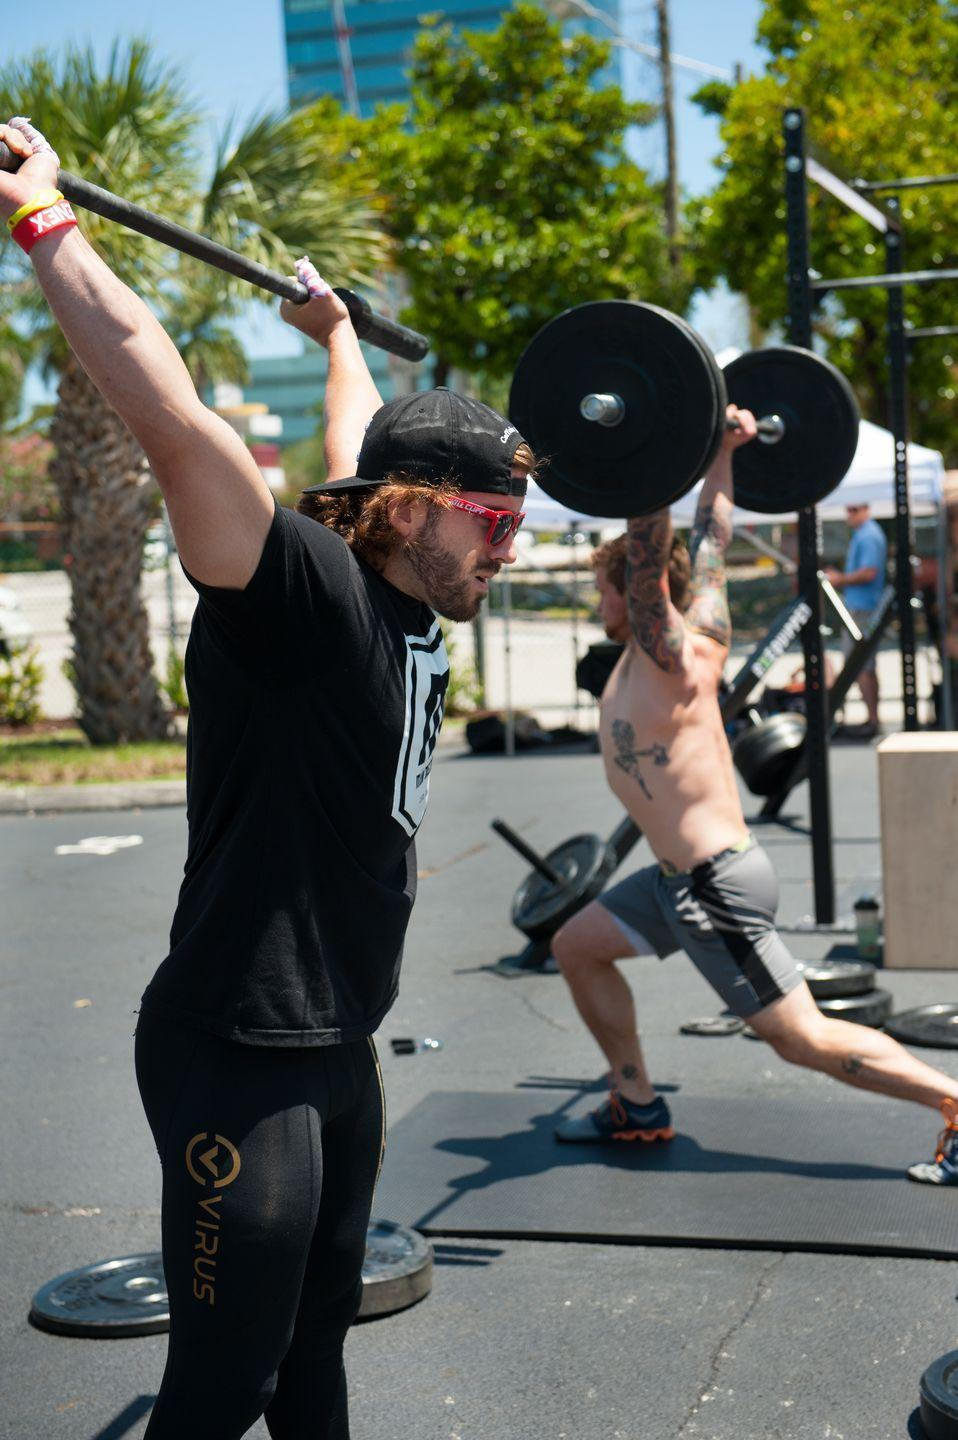 """<p>All validated scores must be submitted within four days of being released. The competition does not recognize any submissions that are <a href=""""https://s3.amazonaws.com/crossfitpubliccontent/CrossFitGames_Rulebook.pdf"""" rel=""""nofollow noopener"""" target=""""_blank"""" data-ylk=""""slk:late or incomplete"""" class=""""link rapid-noclick-resp"""">late or incomplete</a>.</p>"""